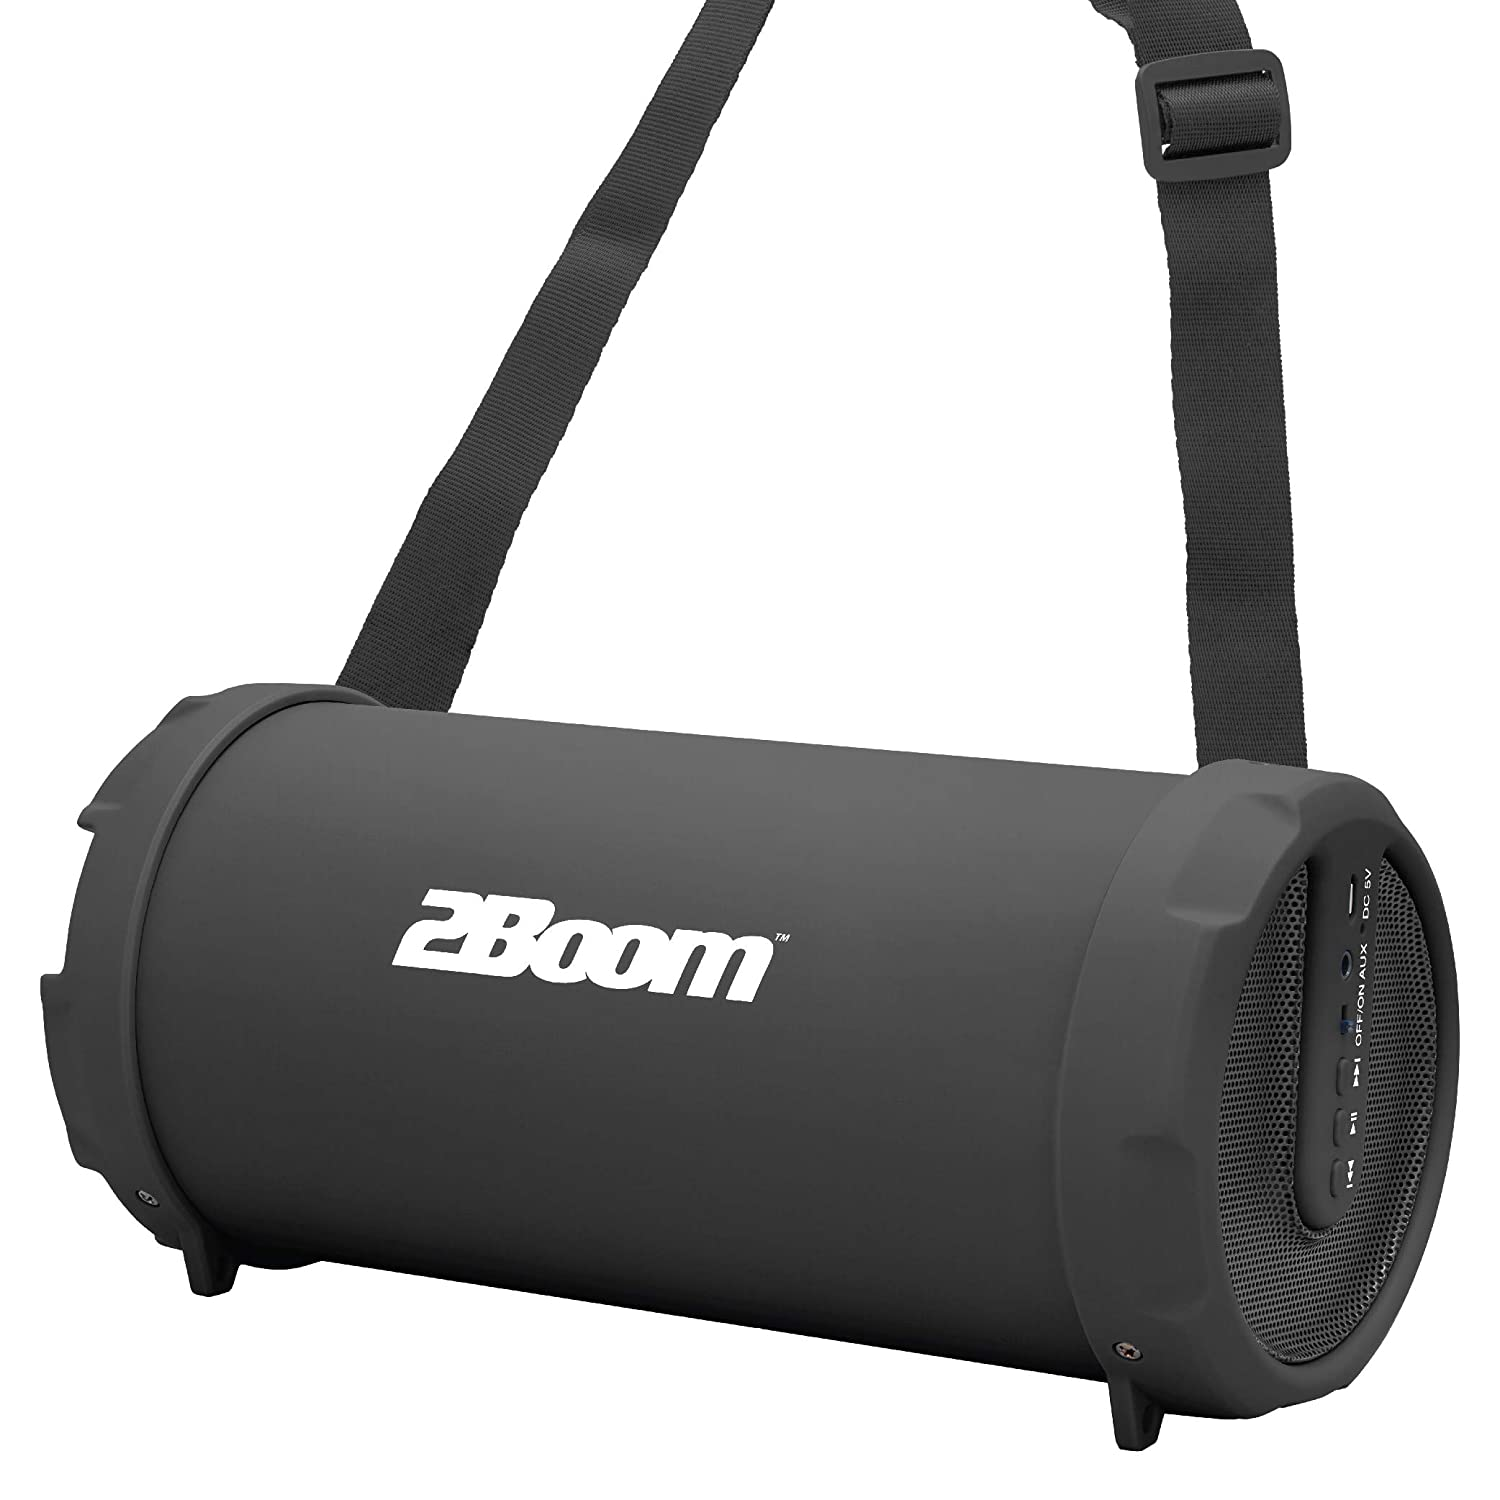 2BOOM Mini Bass King Wireless Bluetooth Portable Outdoor Speaker with FM  Radio LED Display - Black